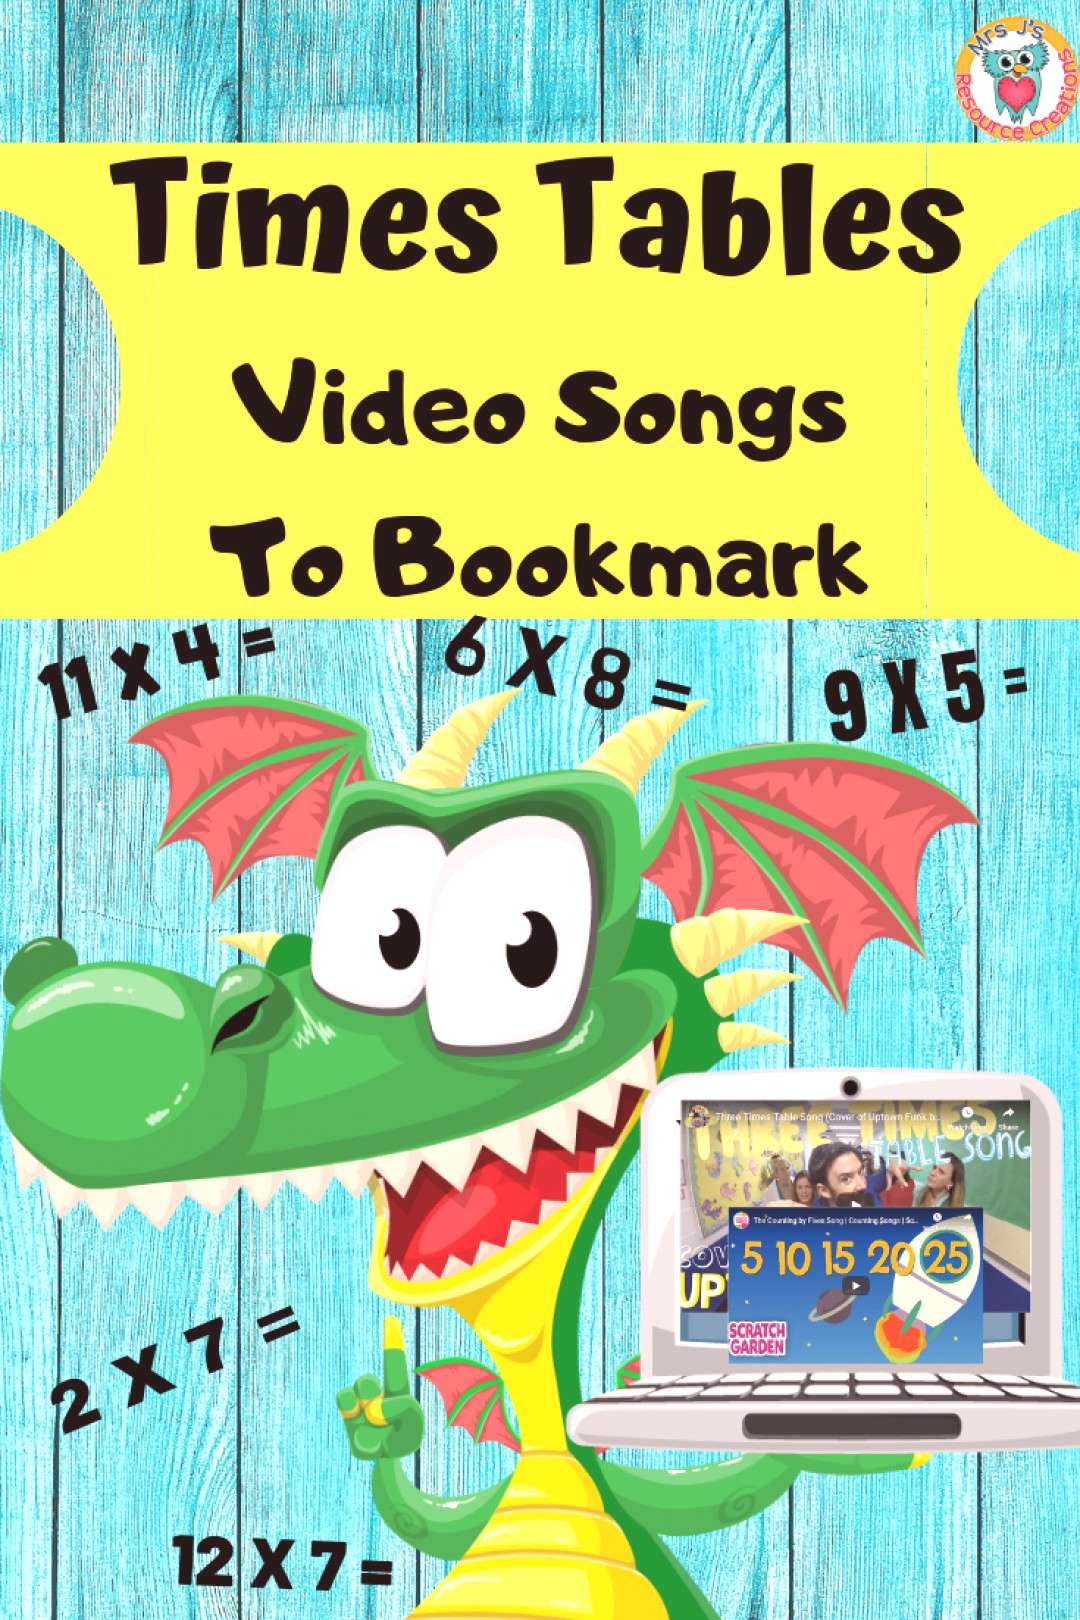 Times Tables Video Songs for Kids Times Tables Video Songs to Bookmark to help your kids learn mult